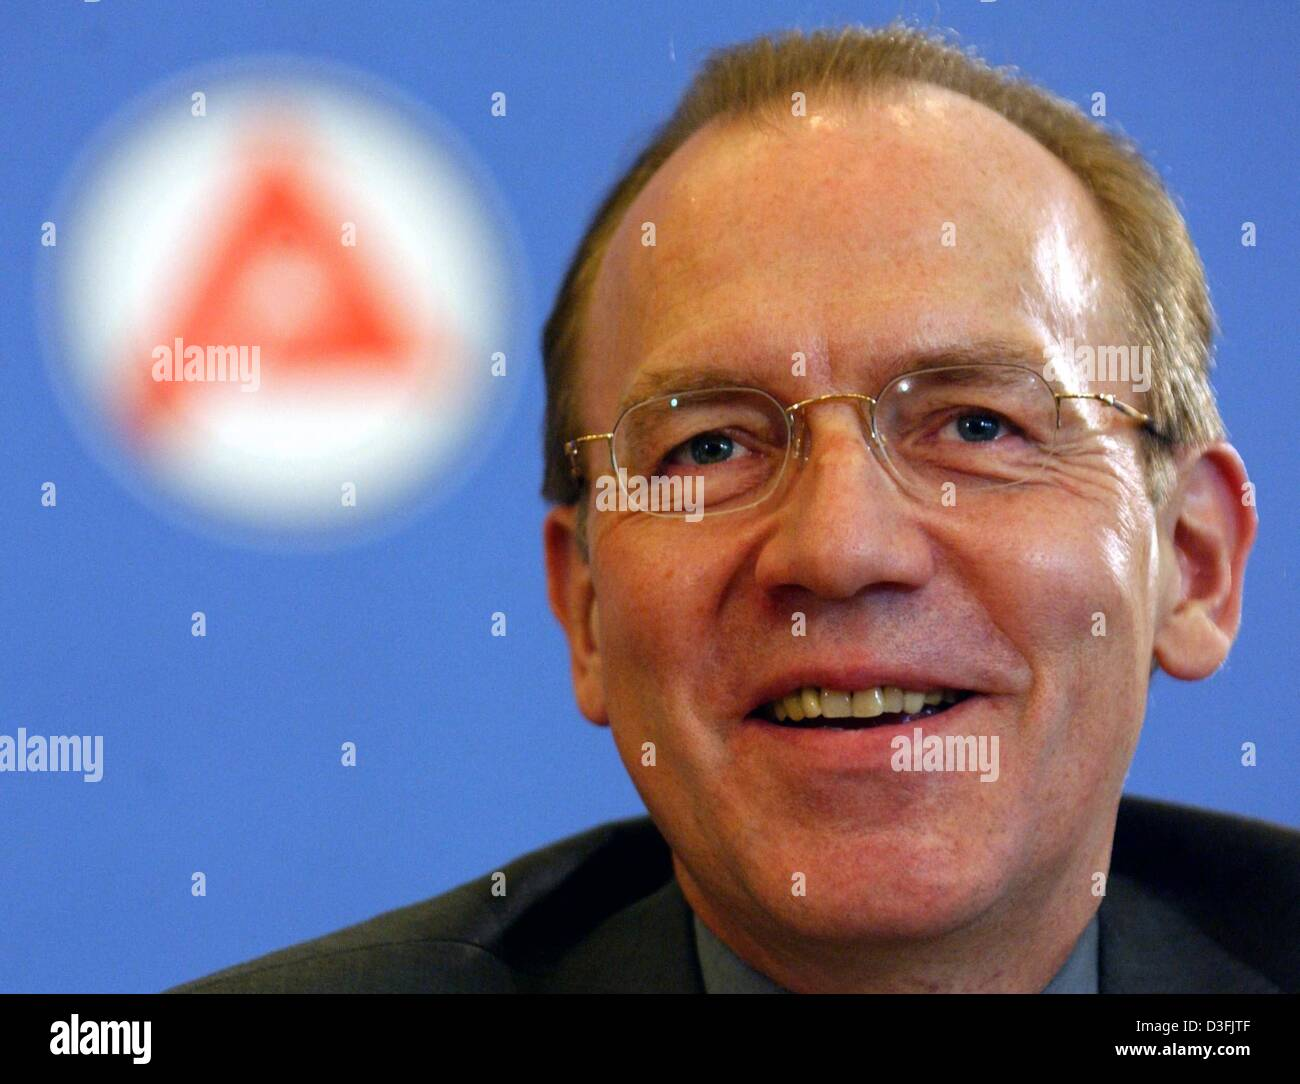 (dpa) - Florian Gerster, Chairman of the Federal Employment Office, smiles in front of the Arbeitsamt (job centre) - Stock Image